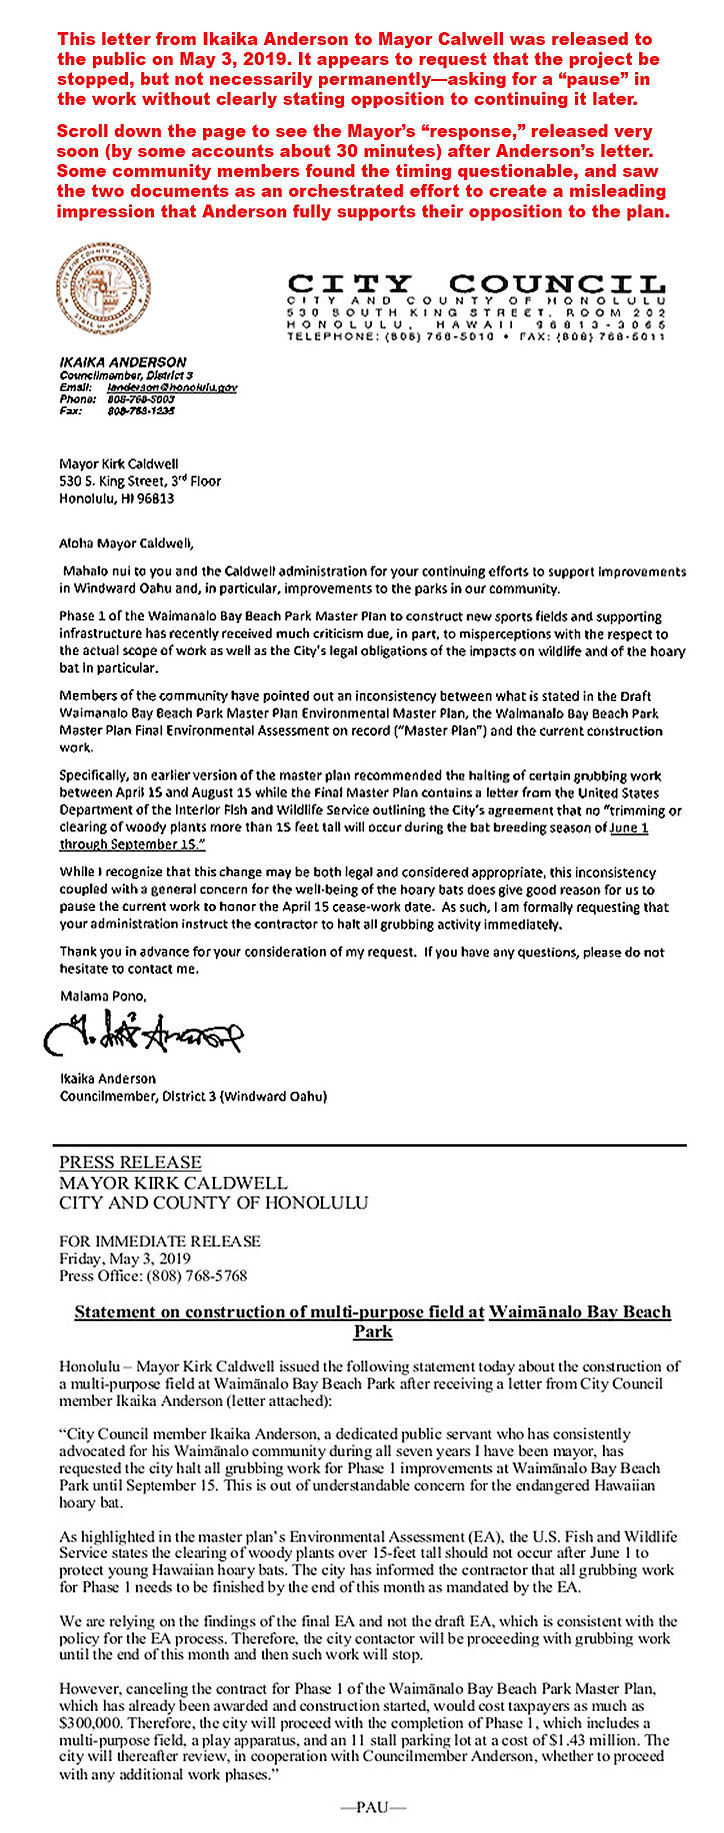 letter and press release - Copy.jpg